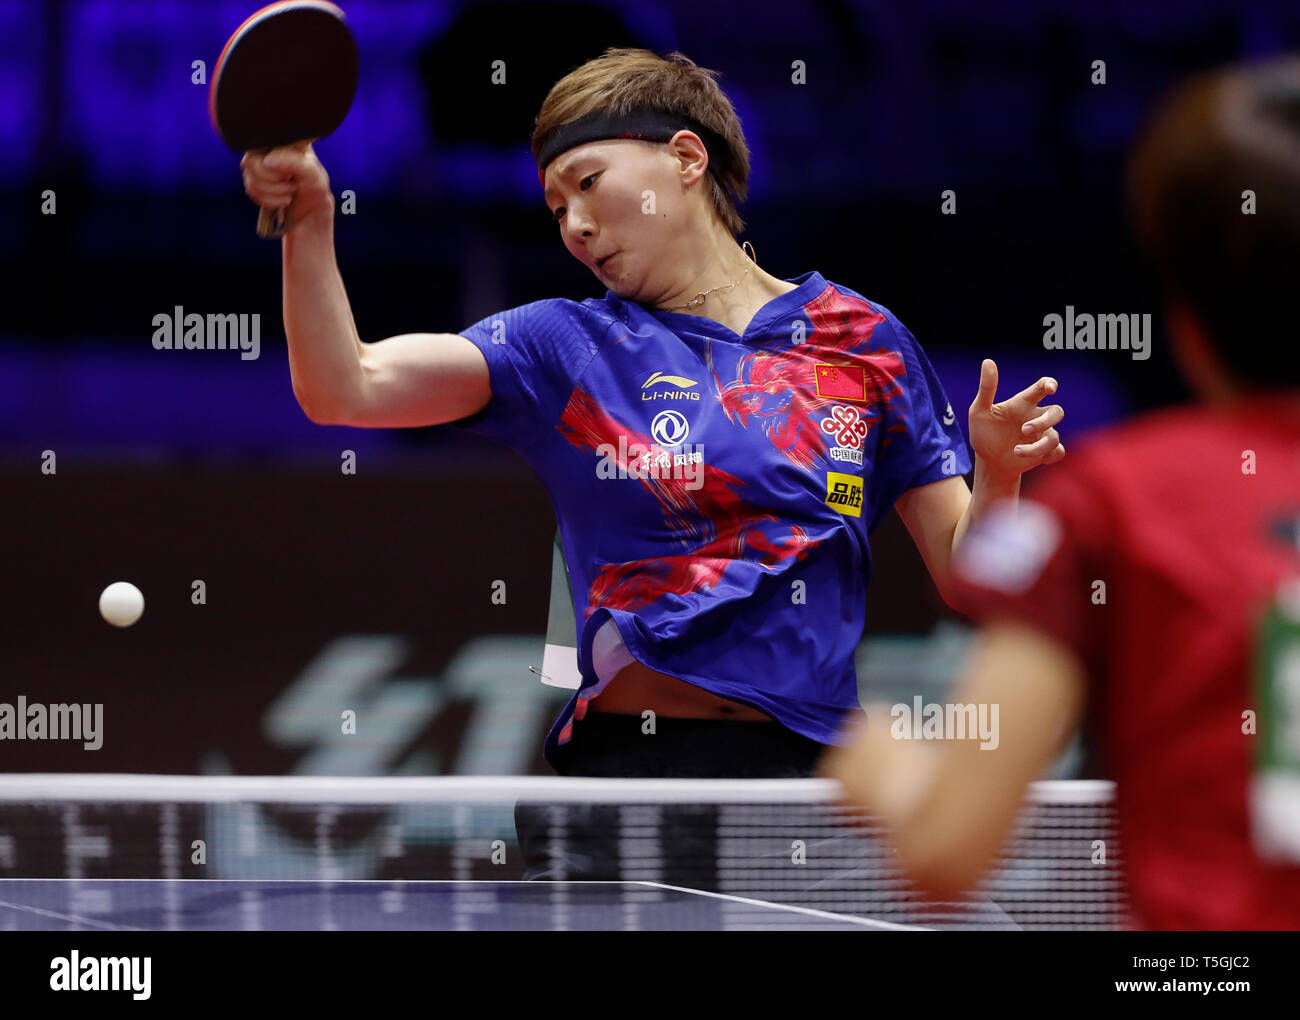 (190425) -- BUDAPEST, April 25, 2019 (Xinhua) -- Wang Manyu of China competes during the women's singles round of 16 match against Hitomi Sato of Japan at 2019 ITTF World Table Tennis Championships in Budapest, Hungary, April 24, 2019. (Xinhua/Han Yan) Stock Photo